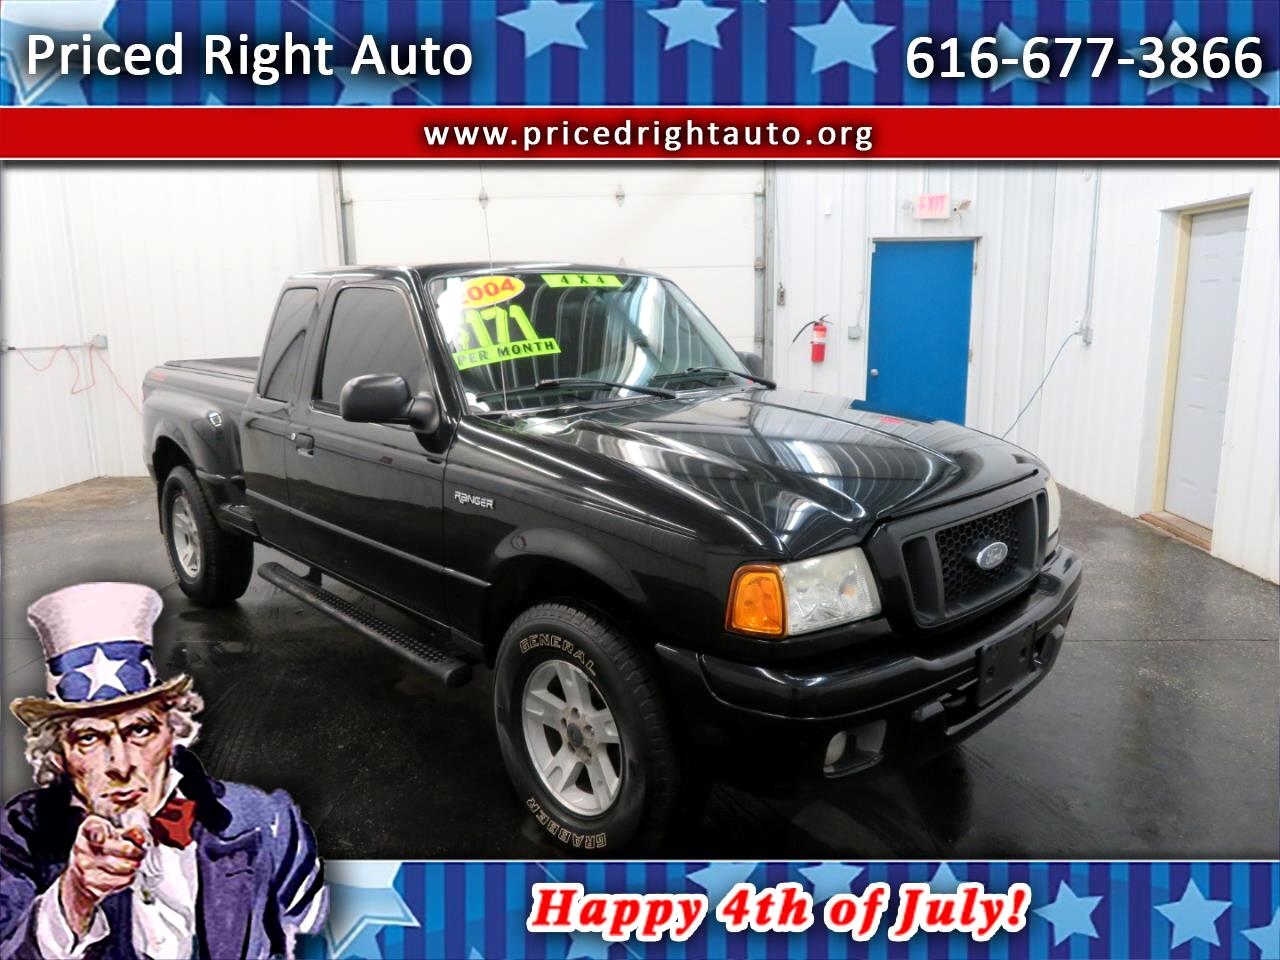 2004 Ford Ranger 4dr Supercab 4.0L XL Fleet 4WD